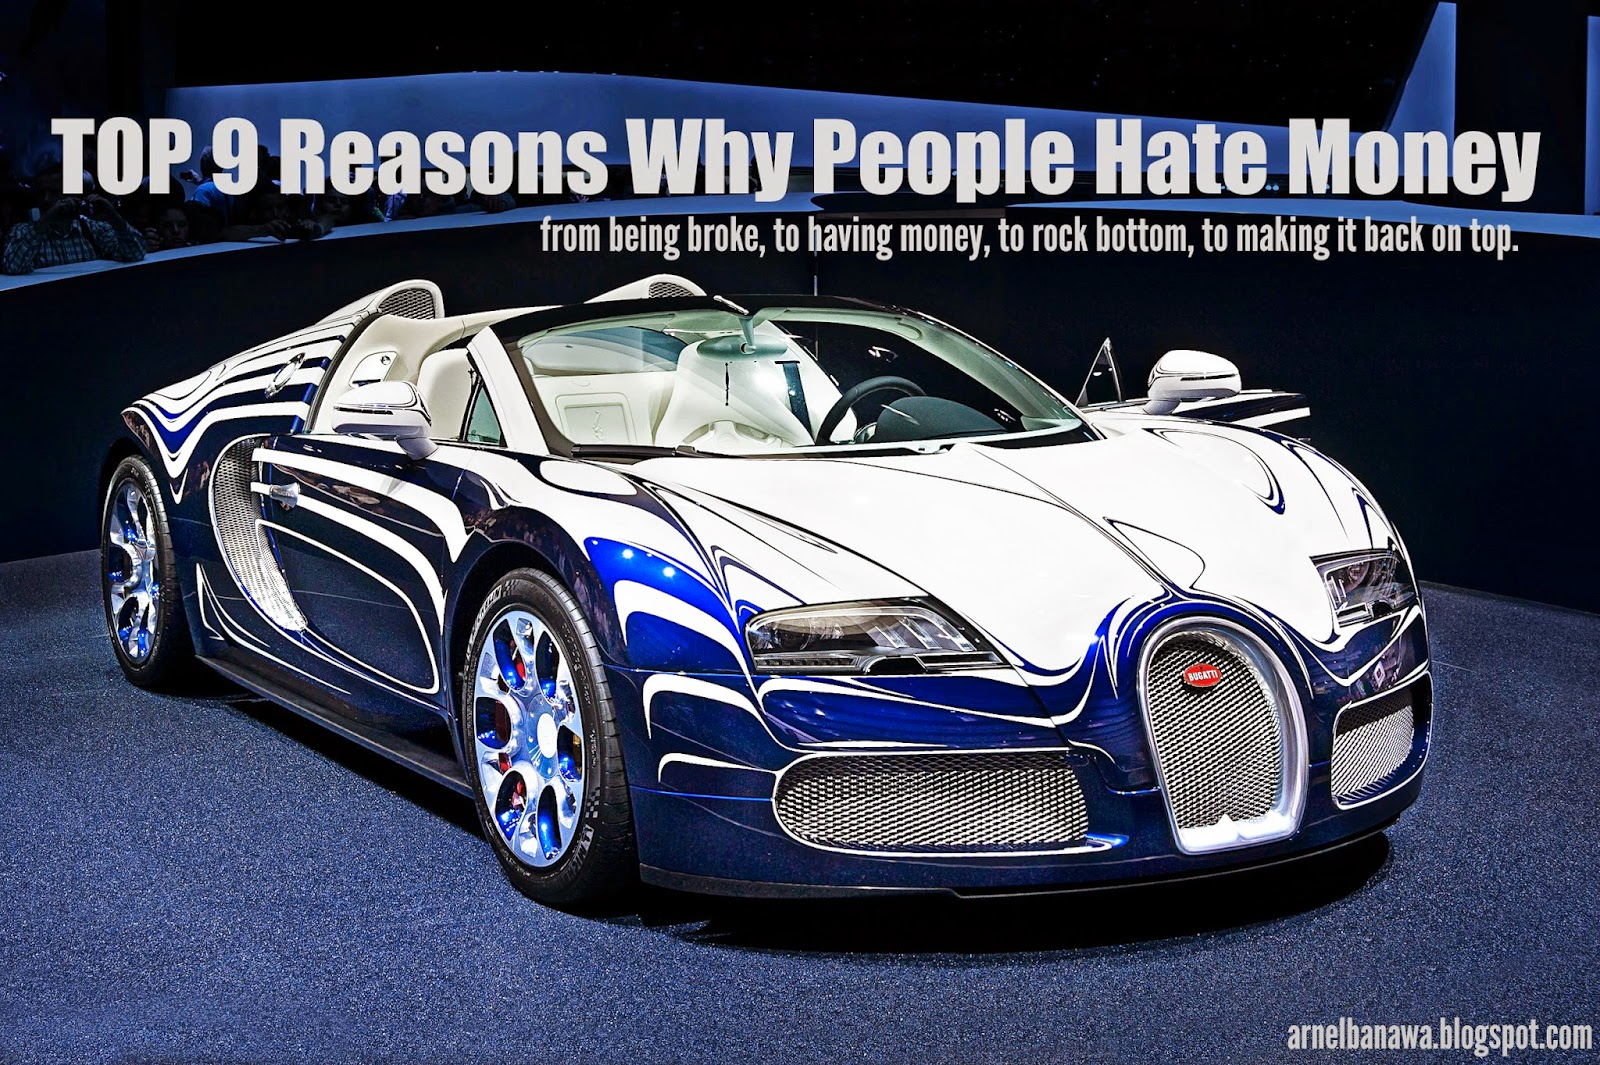 TOP 9 Reasons Why People Hate Money - From a Beachbody Coach